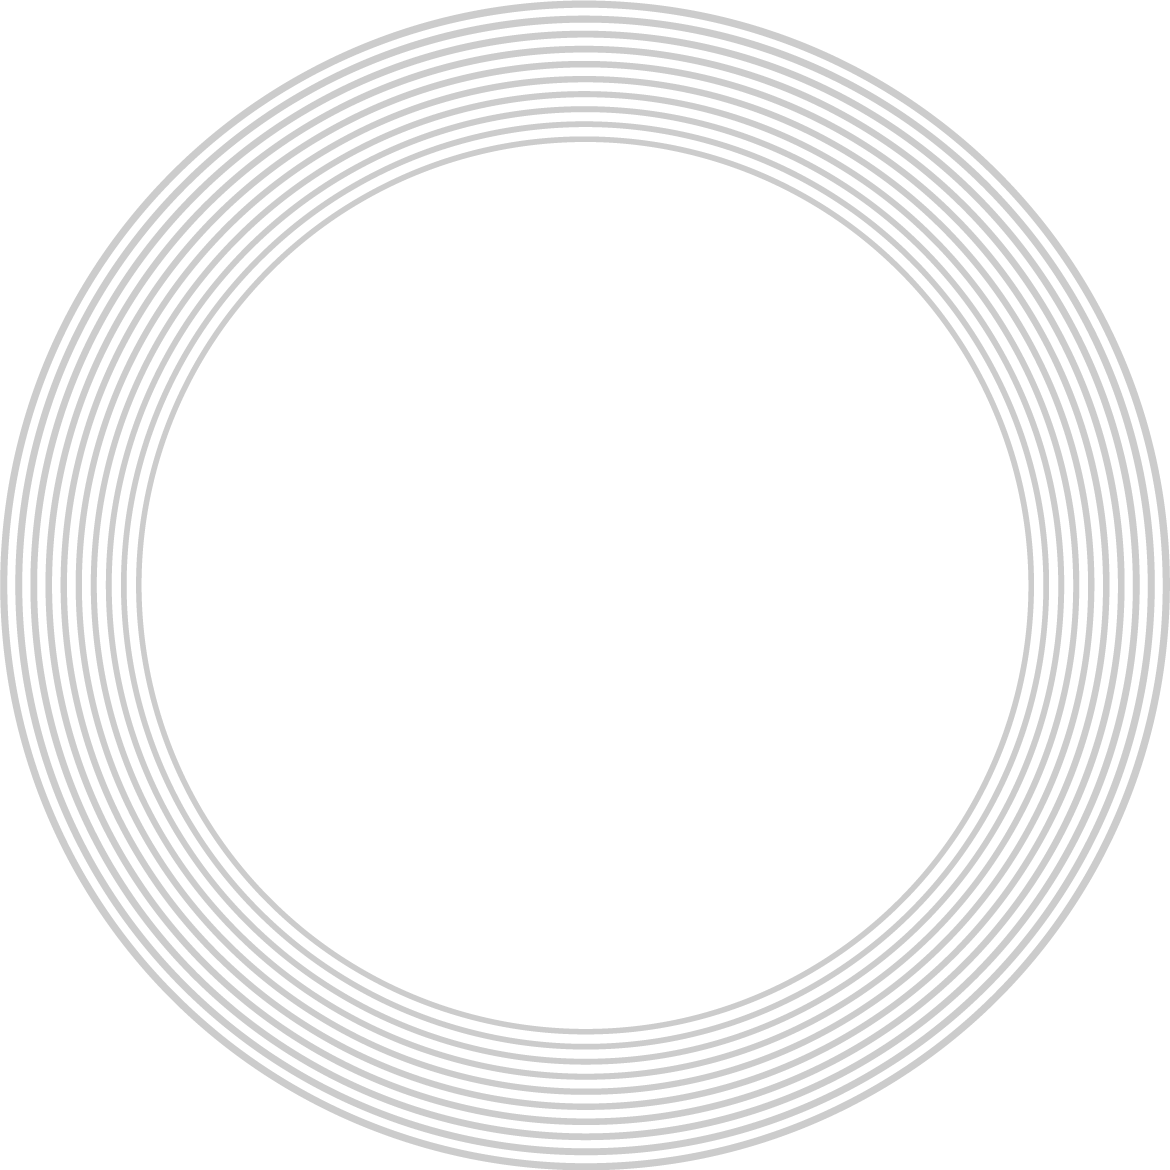 background with gray rings